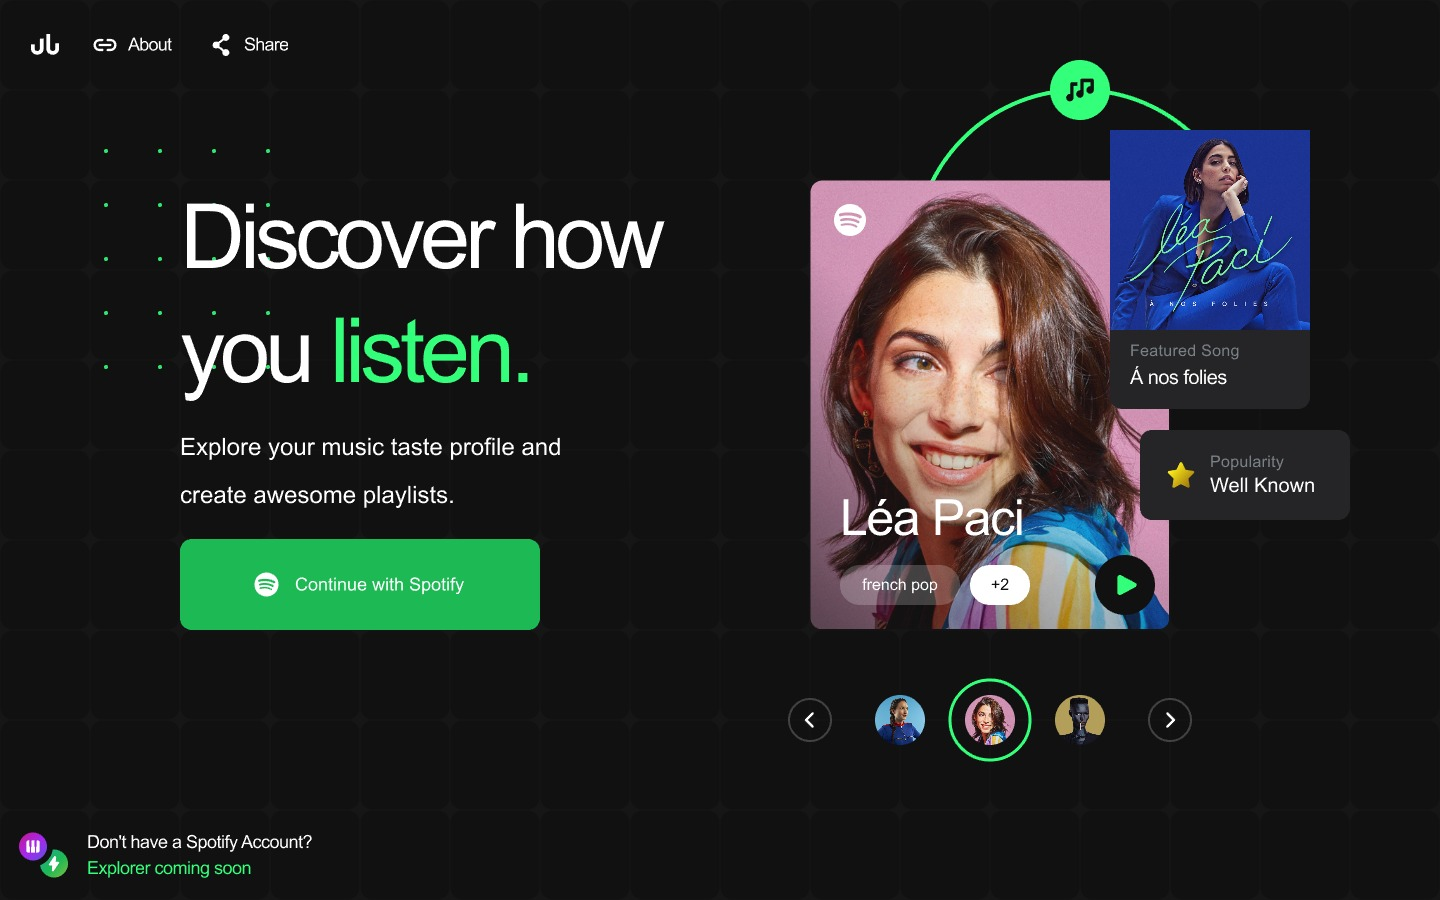 Cruuunchify for InVision Studio - Cruuunchify is a new way to discover how you listen to music, built on Spotify's public API for Spotify users. The design for this project was made entirely in InVision Studio. Feel free to download, remix and re-use.